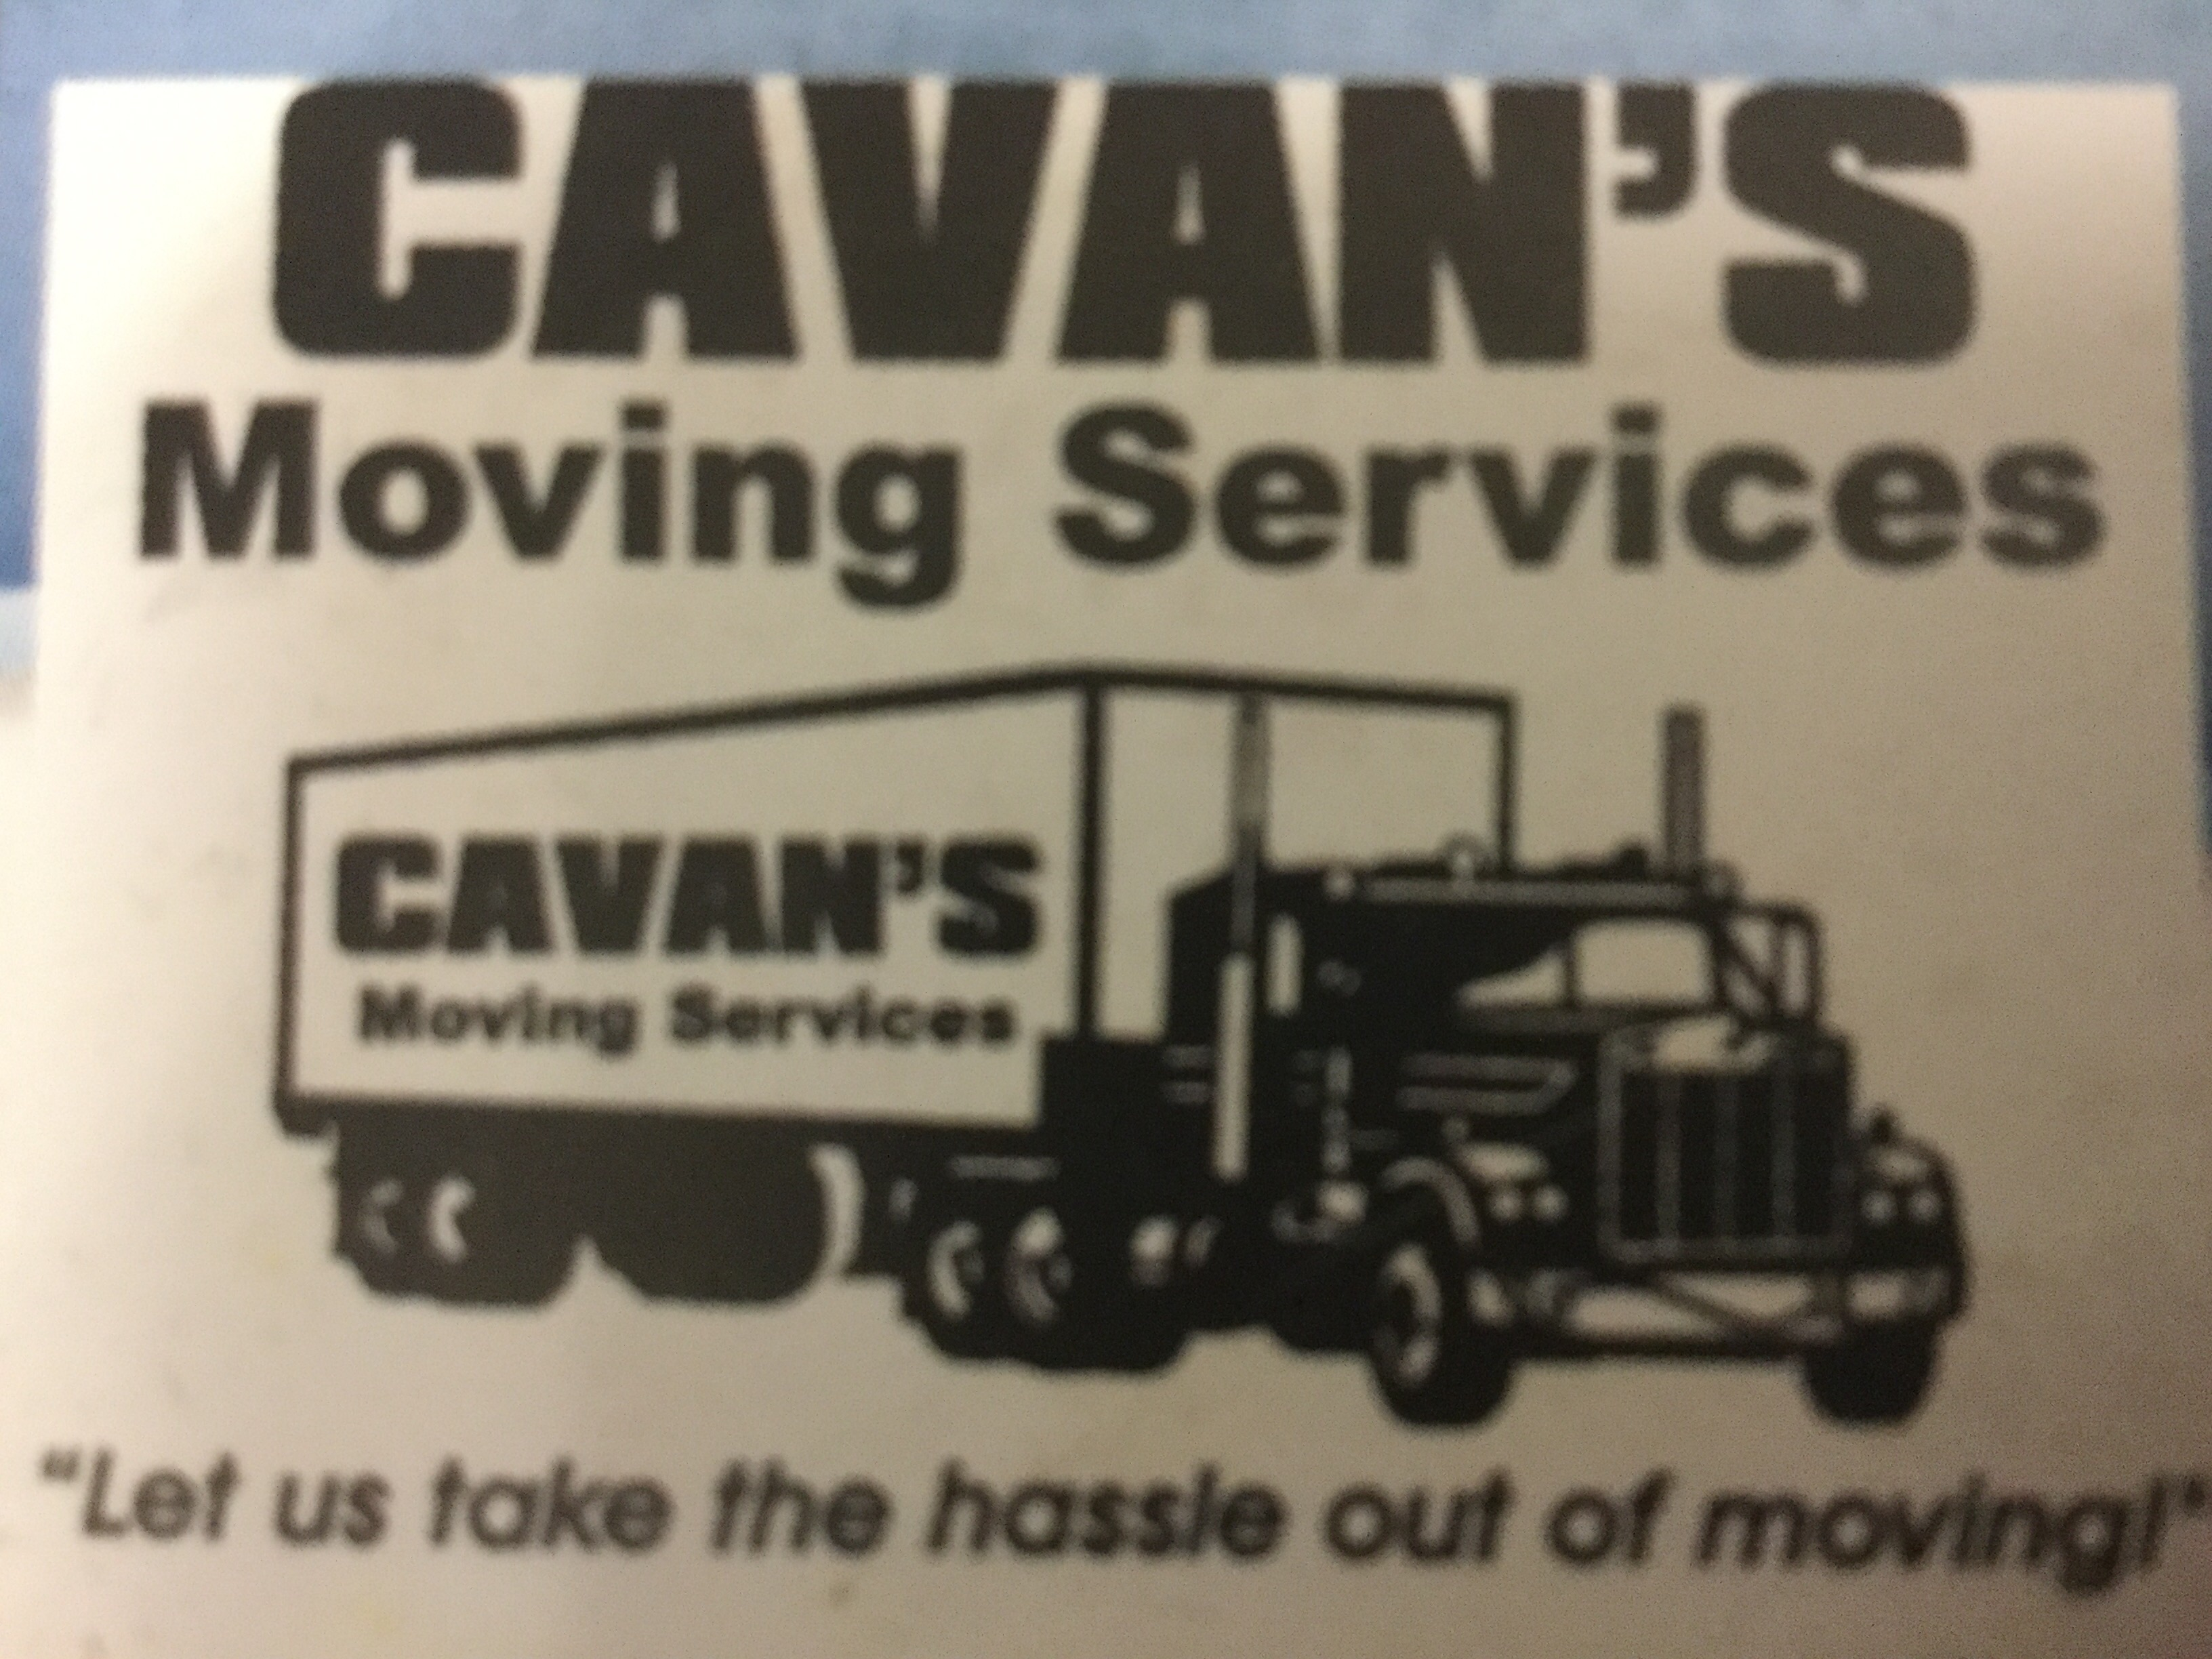 CAVANS MOVING SERVICES Inc